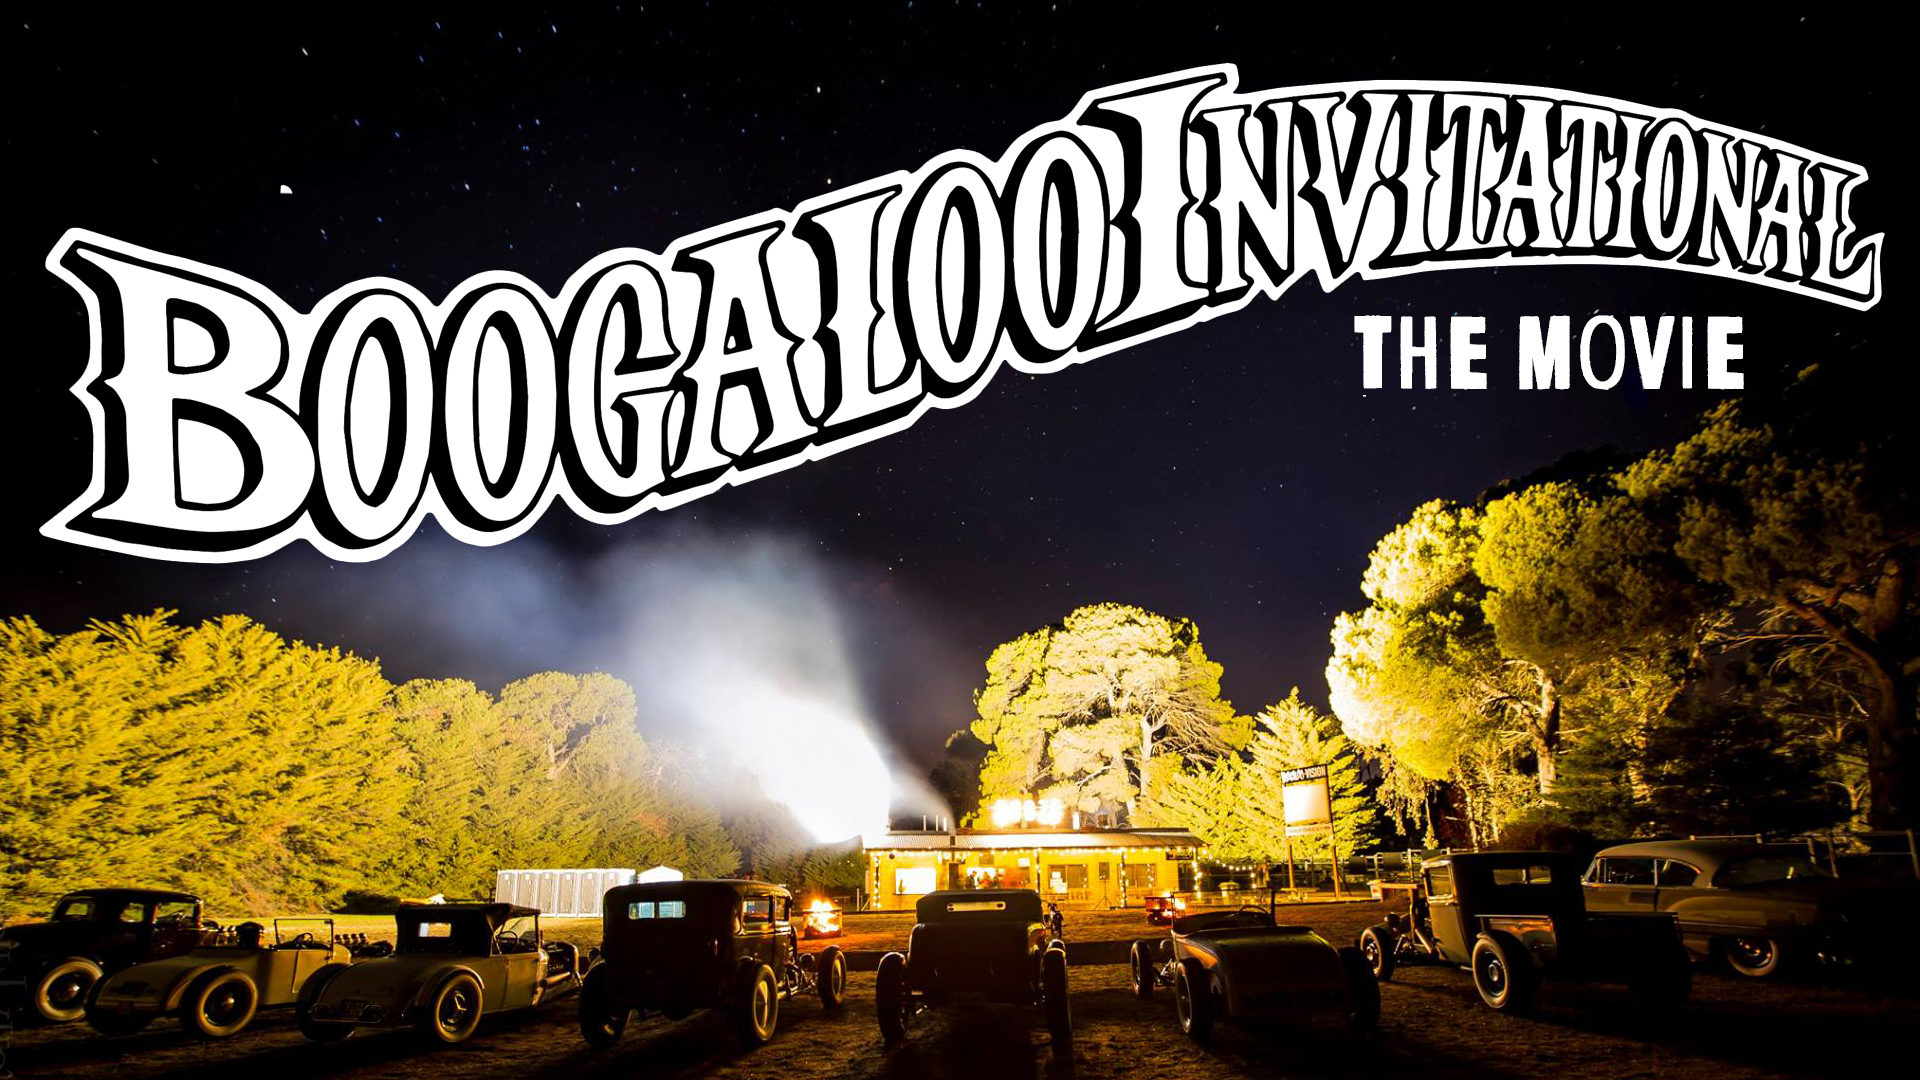 Boogaloo Invitational The Movie